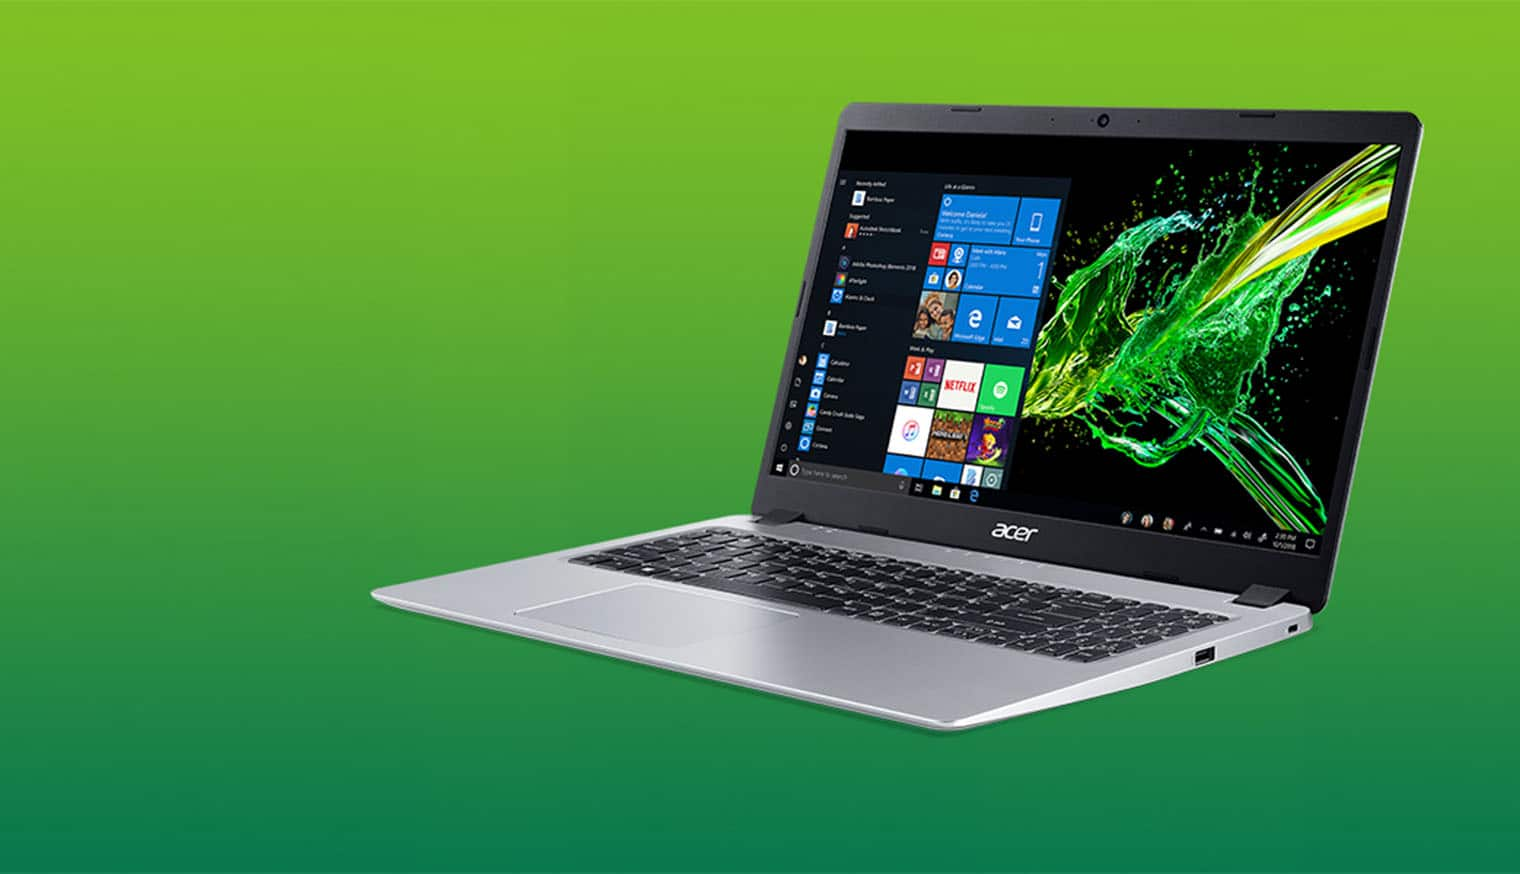 acer aspire 5 a515-43-r19l laptop featured